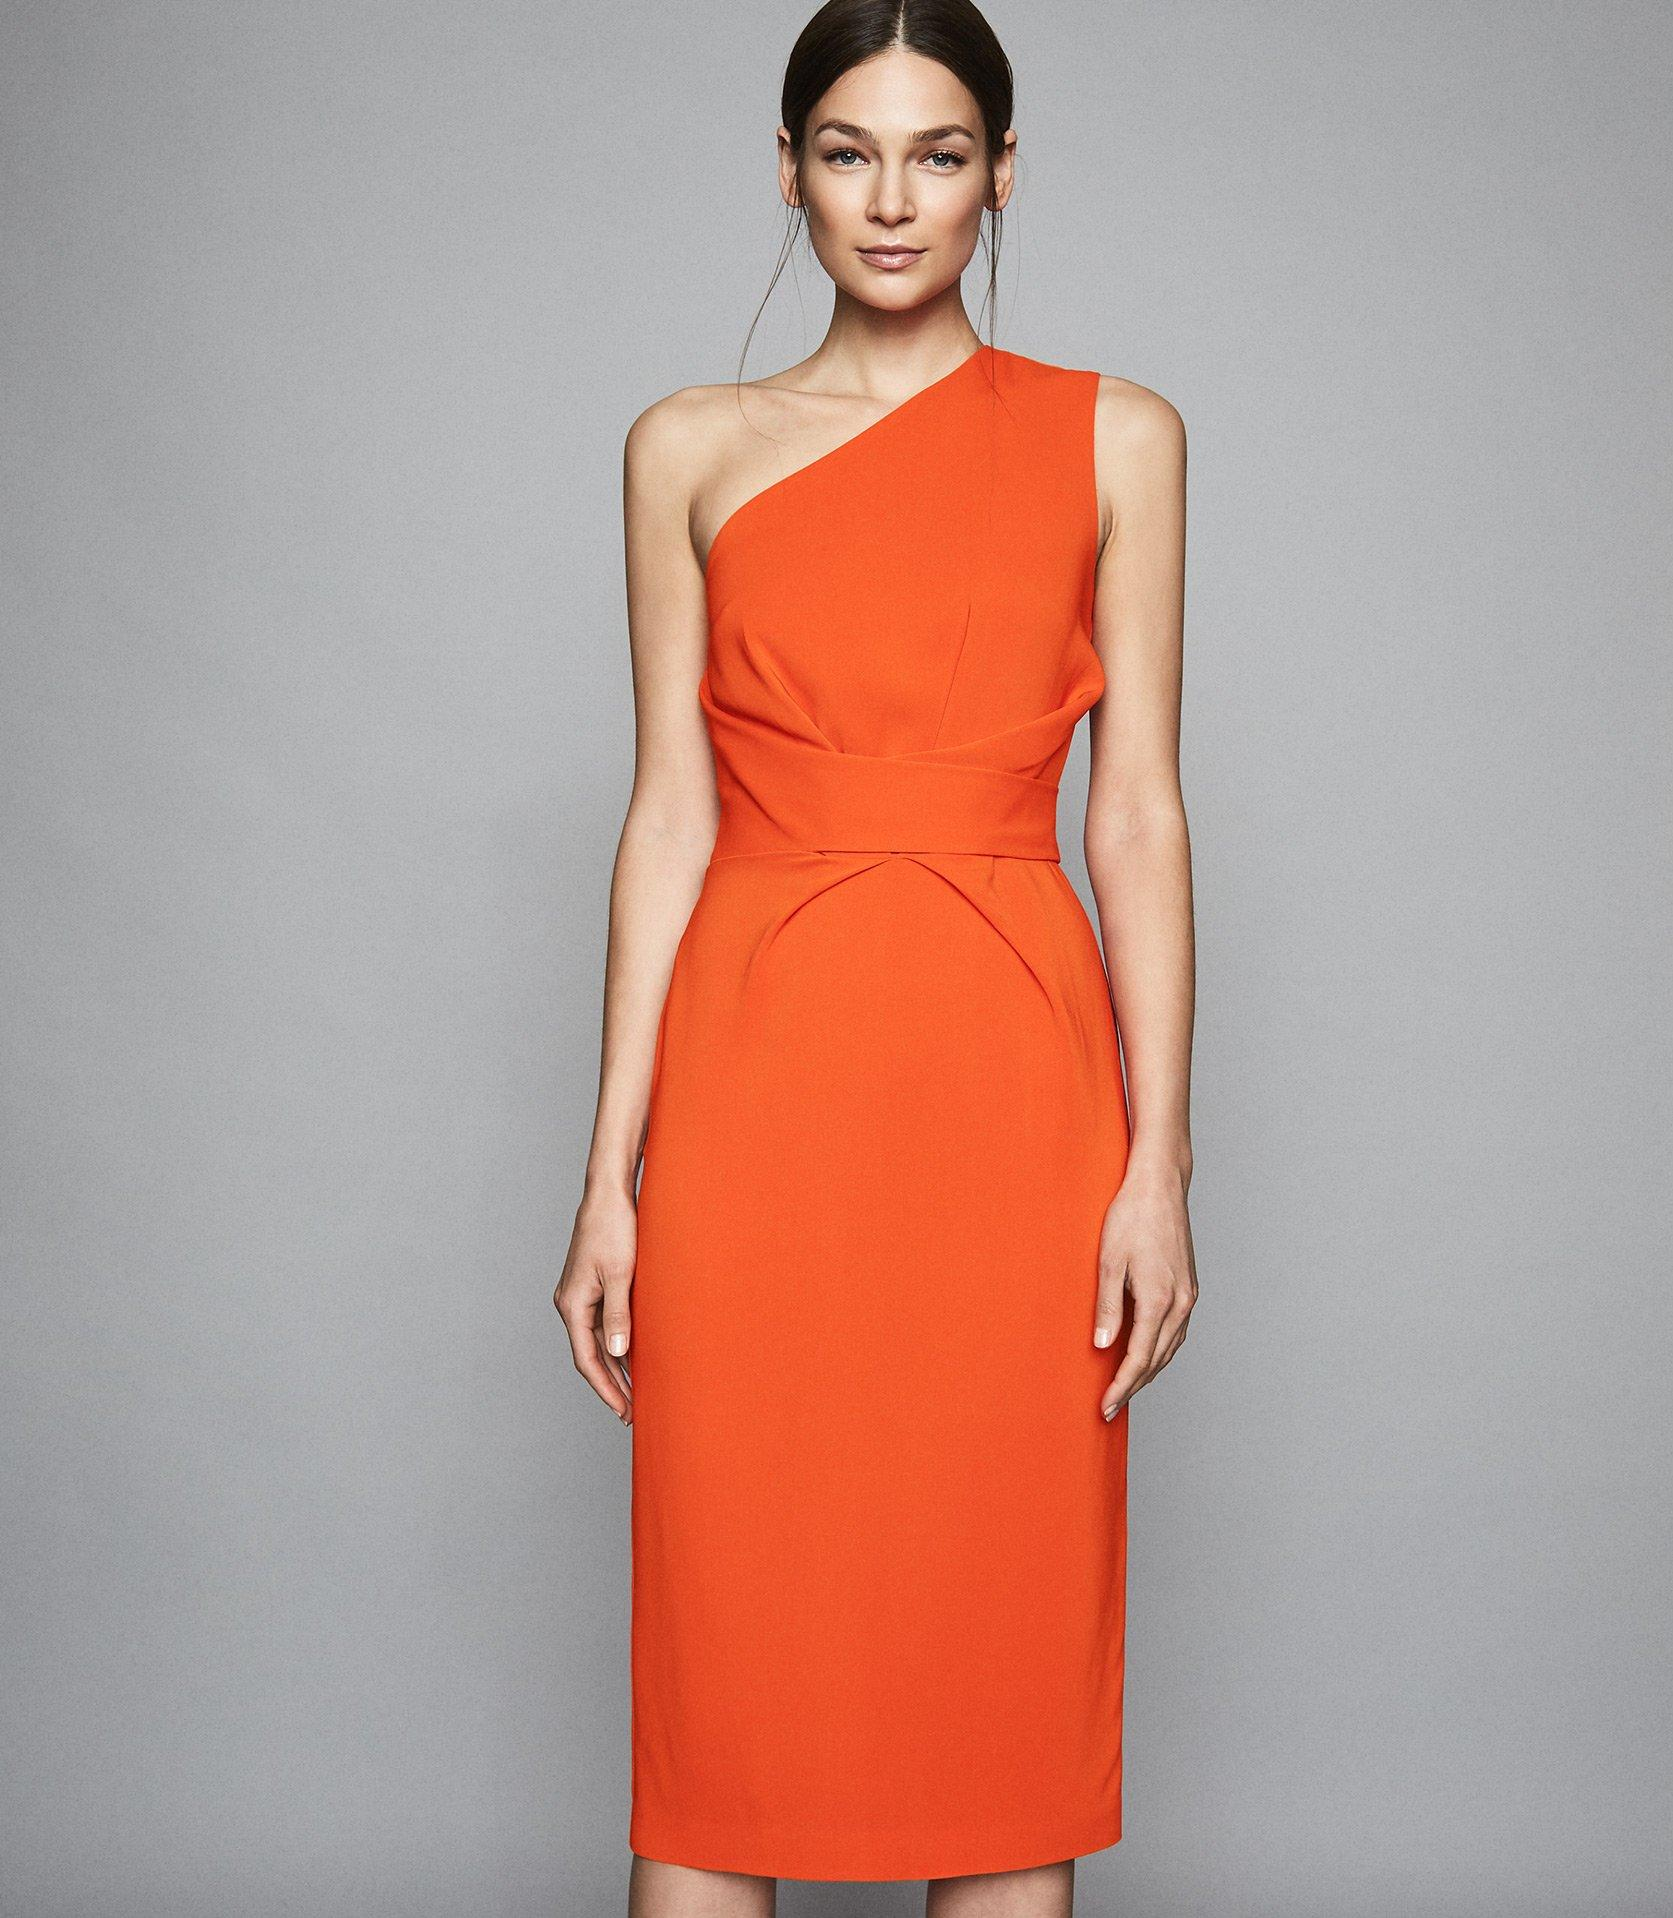 e7a55bed3c3 Reiss - Orange Laurent - One Shoulder Slim Fit Dress - Lyst. View fullscreen